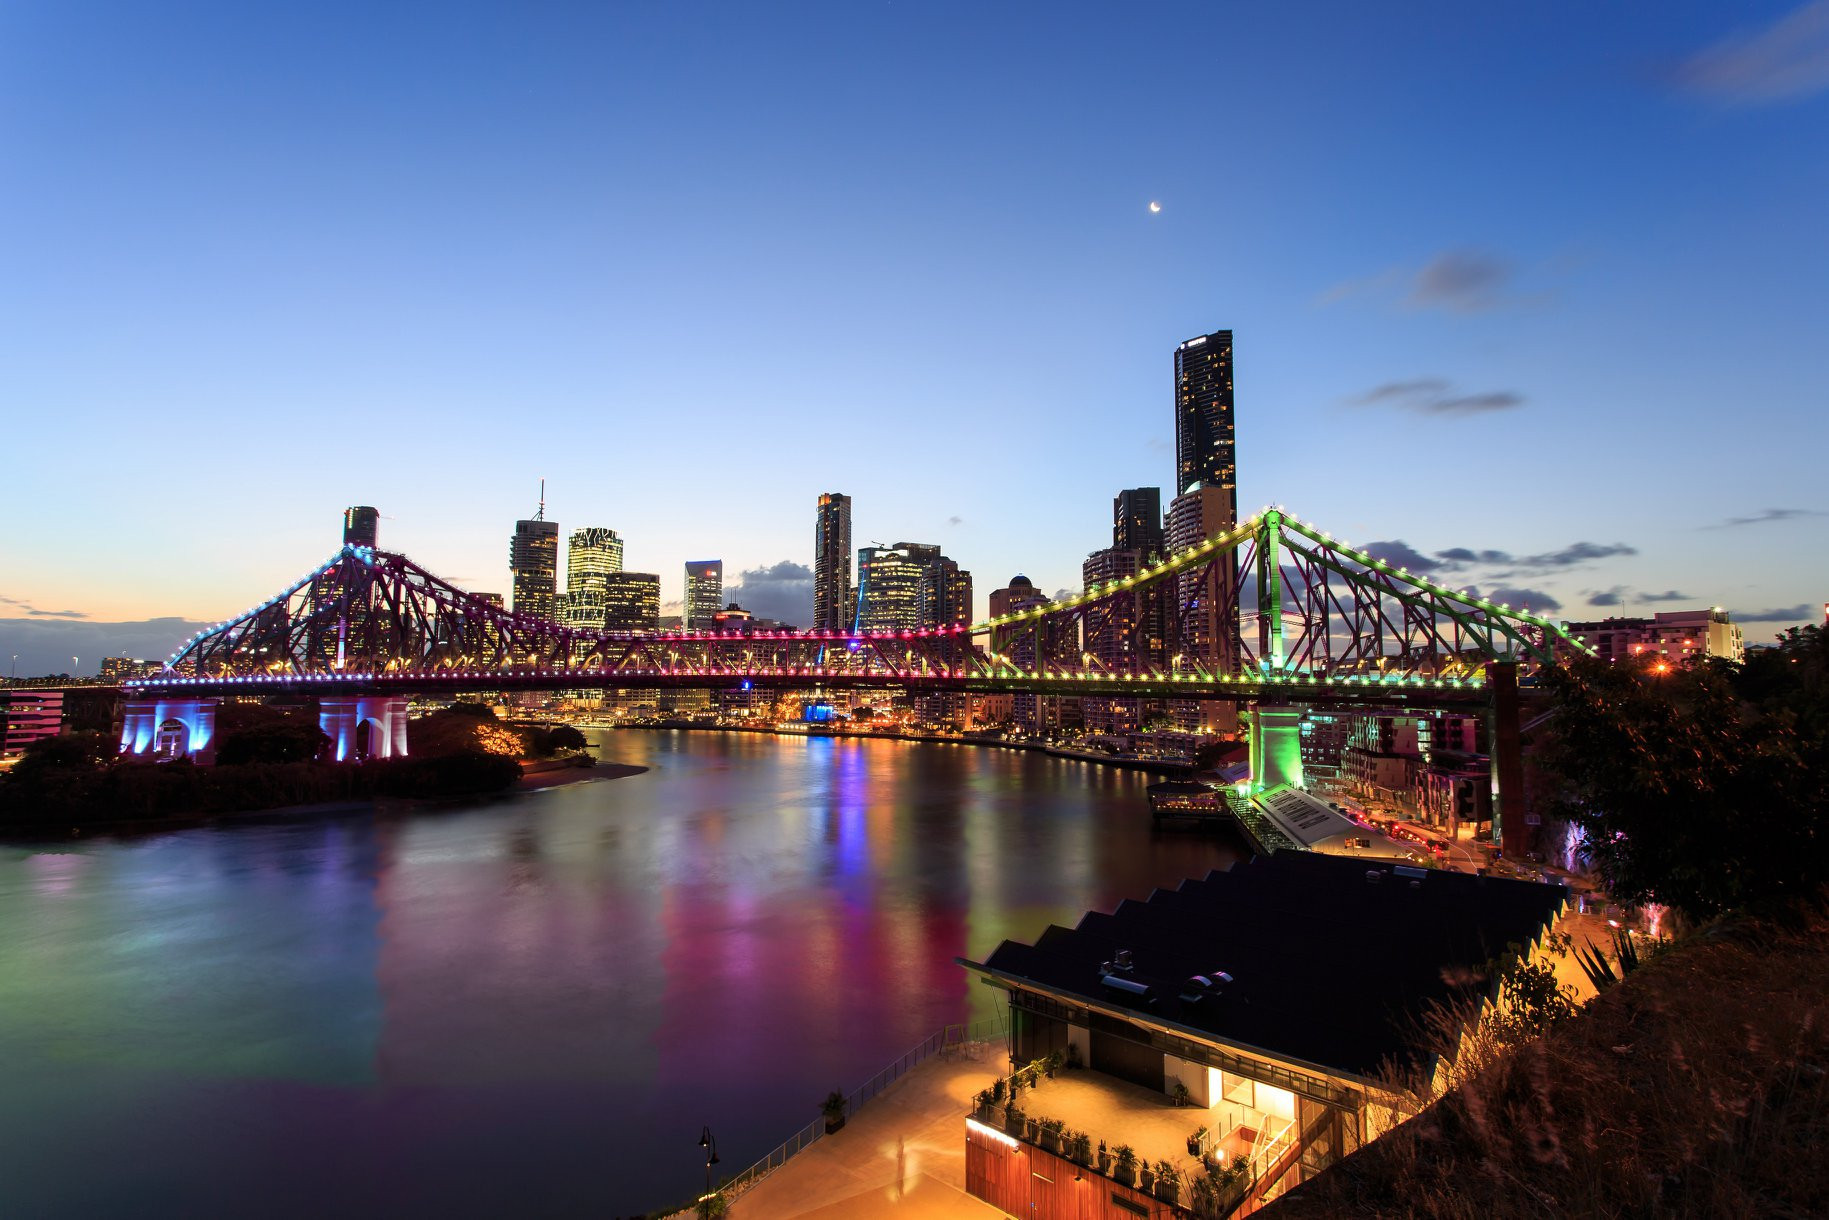 Lights on Brisbane's bridges were lit up in celebration last month after the city was accorded